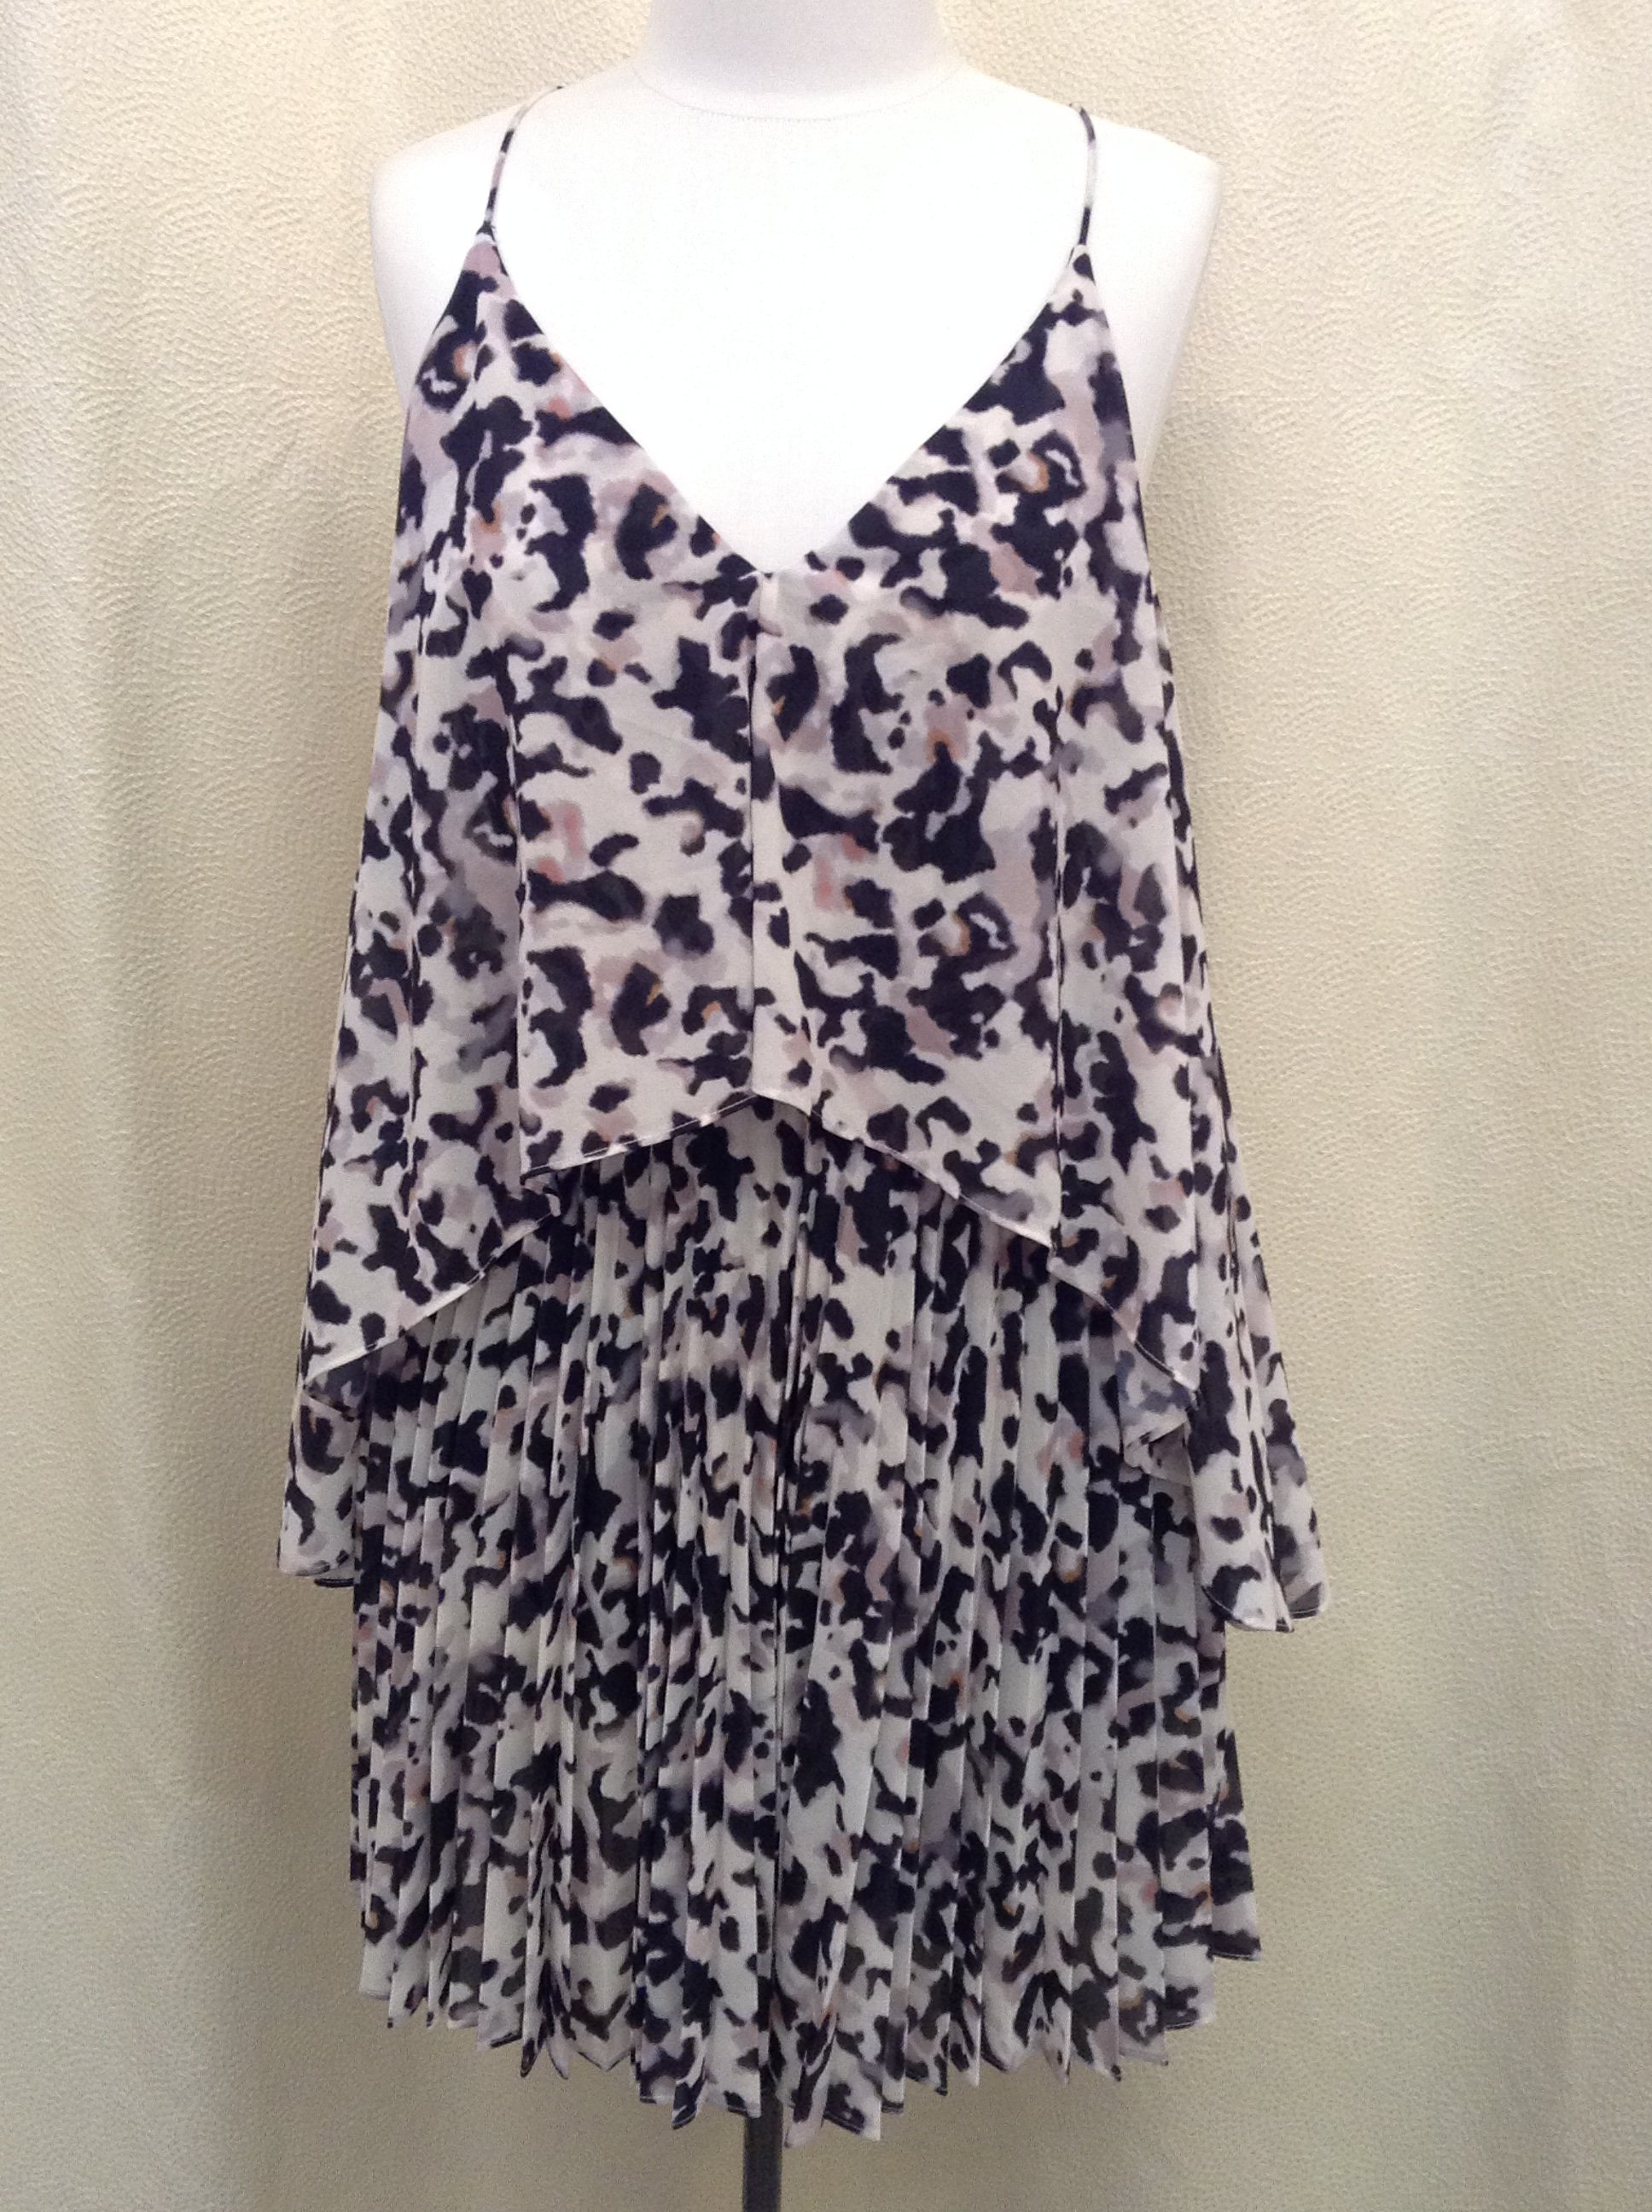 CAMILLA &amp; MARC<br /> Blured Animal Print Dress<br /> Cream, pink and black<br /> Size: S/m